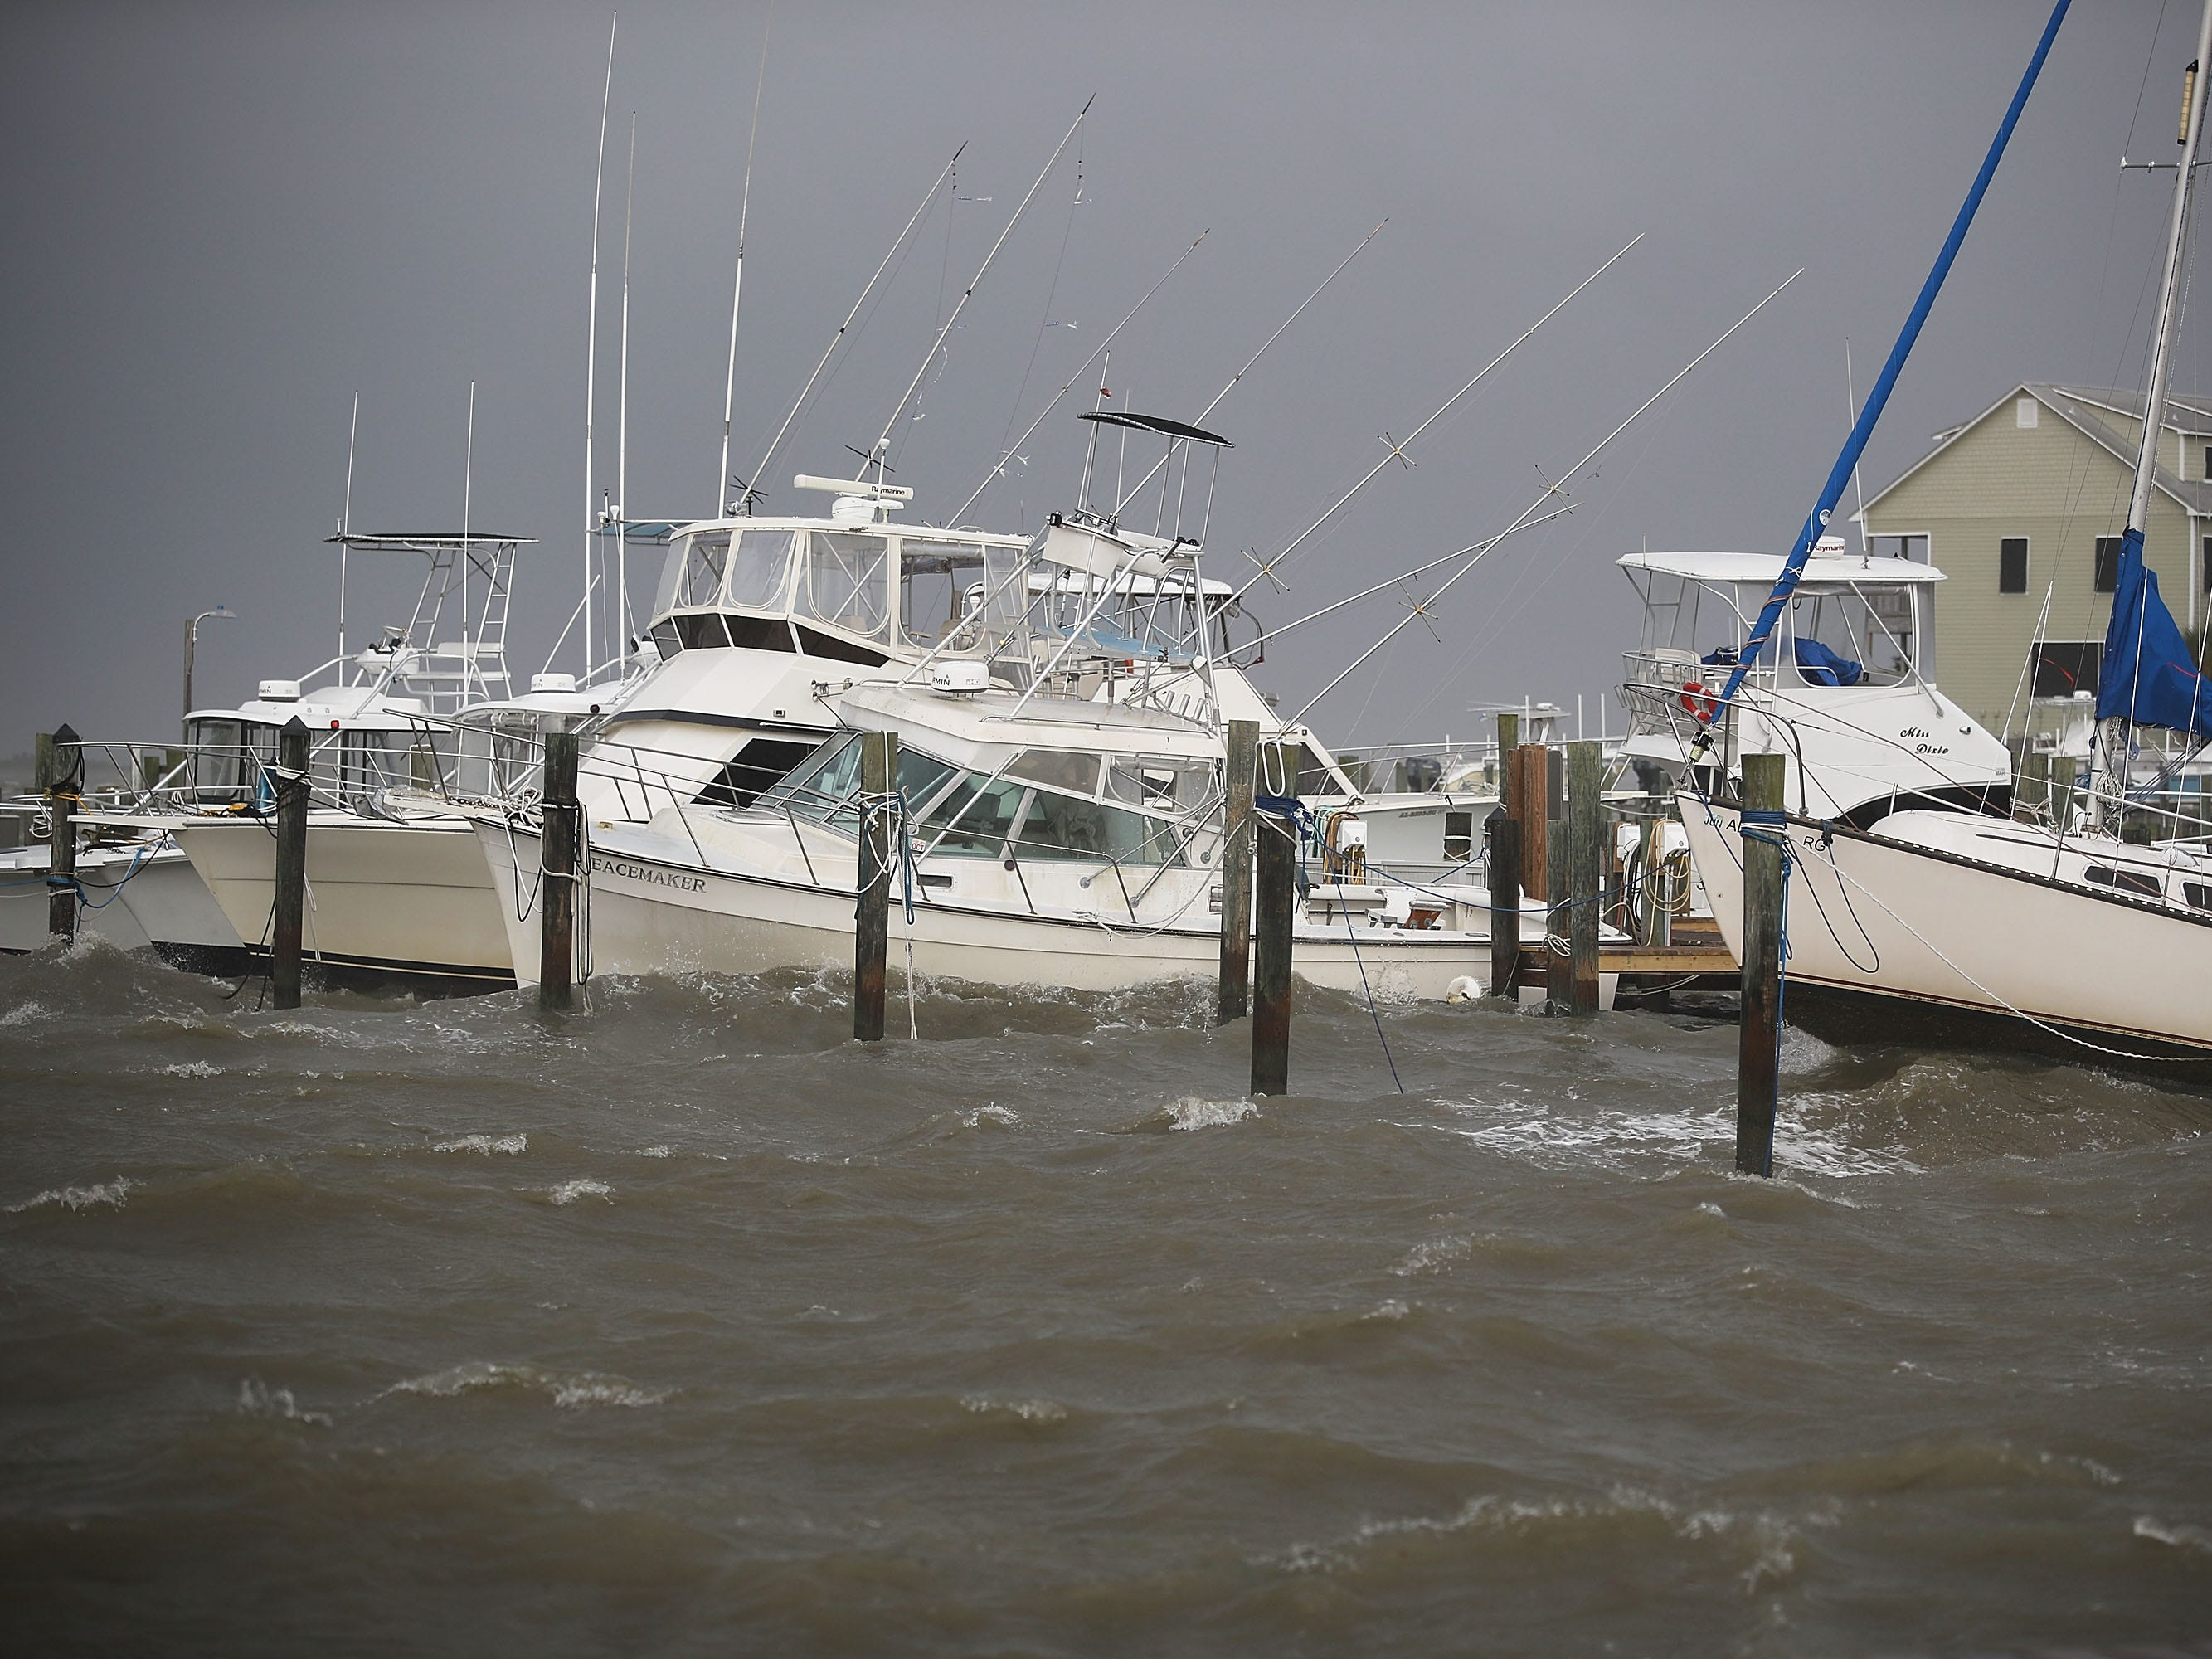 DAUPHIN ISLAND, AL - SEPTEMBER 04:  Boats ride out the incoming waves and rain from Tropical Storm Gordon on September 4, 2018 in Dauphin Island, Alabama.  Gordon heads for the northern Gulf Coast area as a strong tropical storm and could possibly strengthen into a Category 1 hurricane.  (Photo by Joe Raedle/Getty Images) ORG XMIT: 775220251 ORIG FILE ID: 1026756394